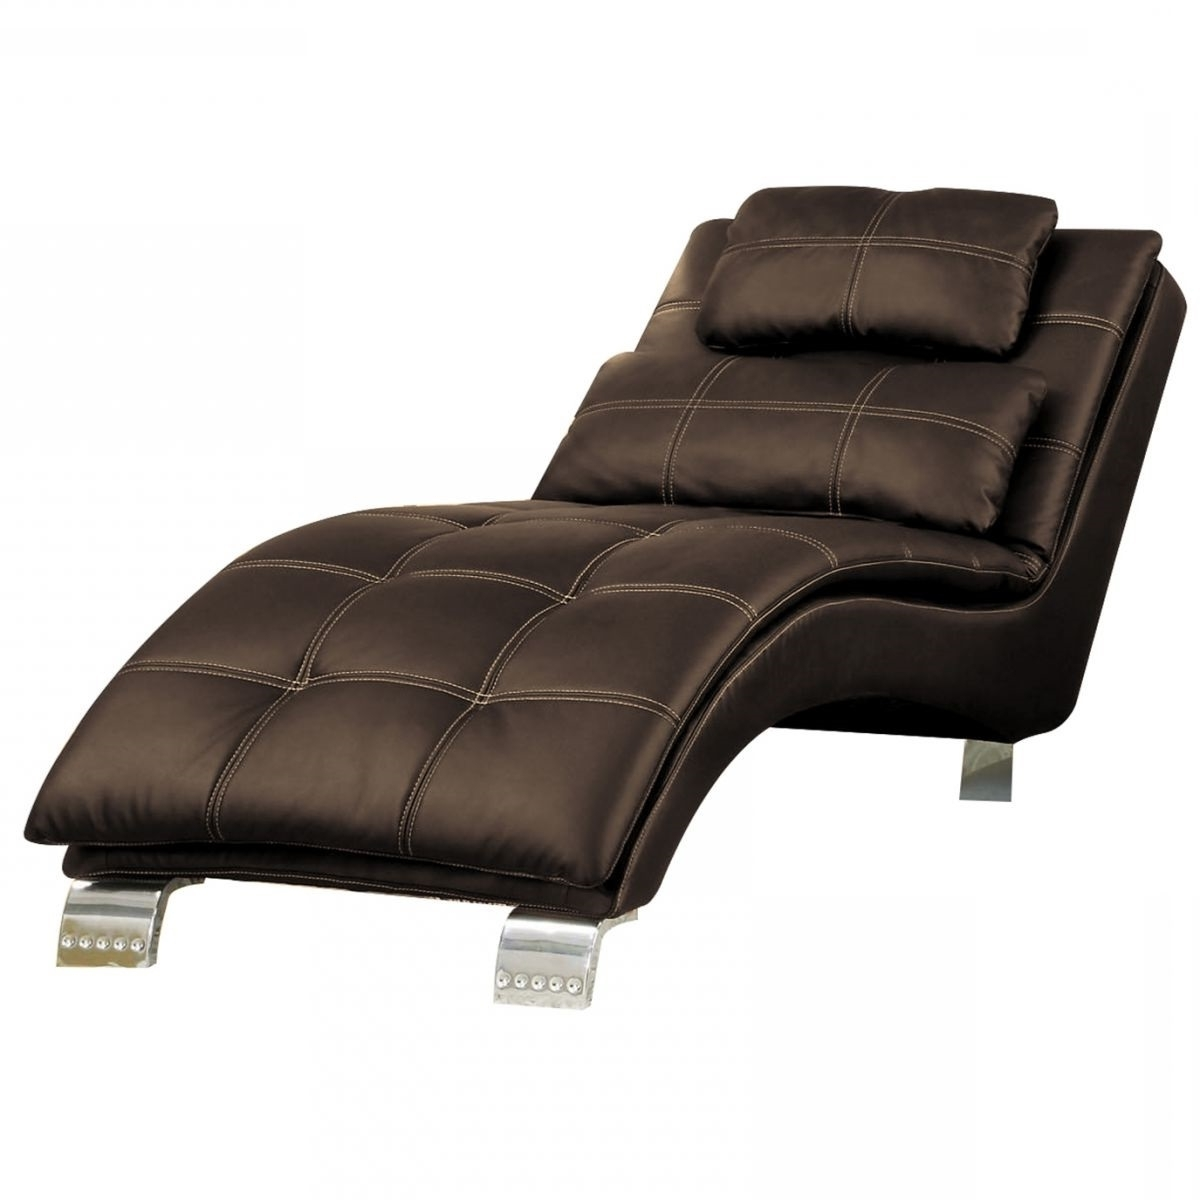 Walston Brown Chaise Lounge (View 15 of 15)